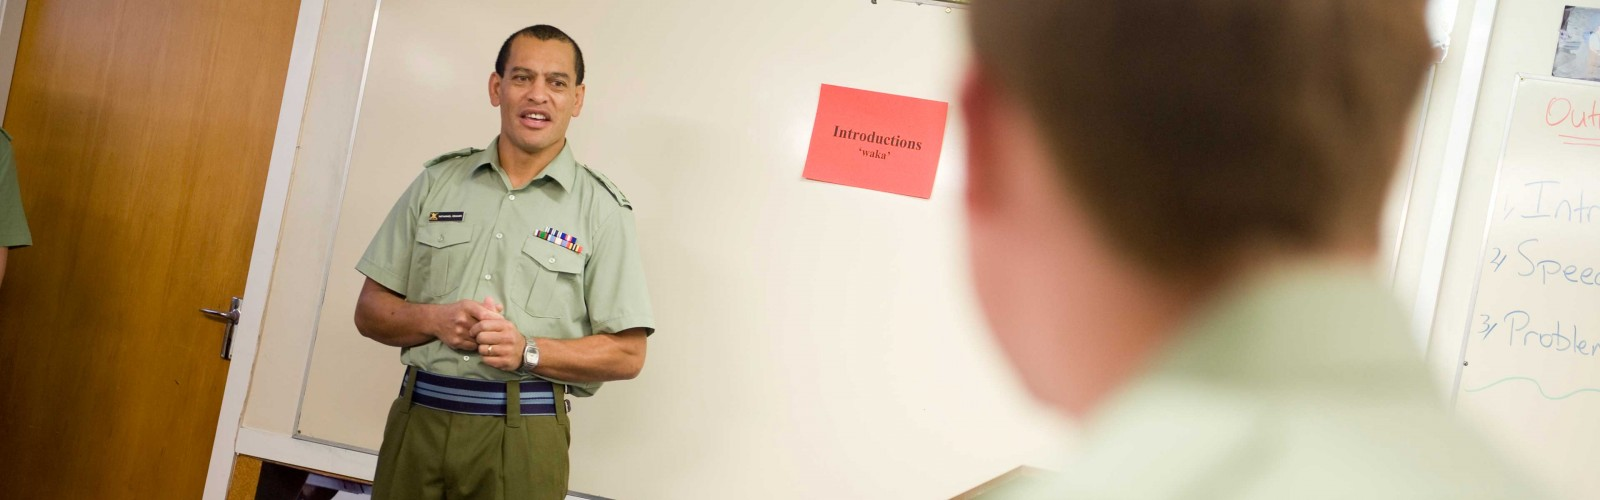 Developing Soldiers to Benefit the NZ Army & NZ Society